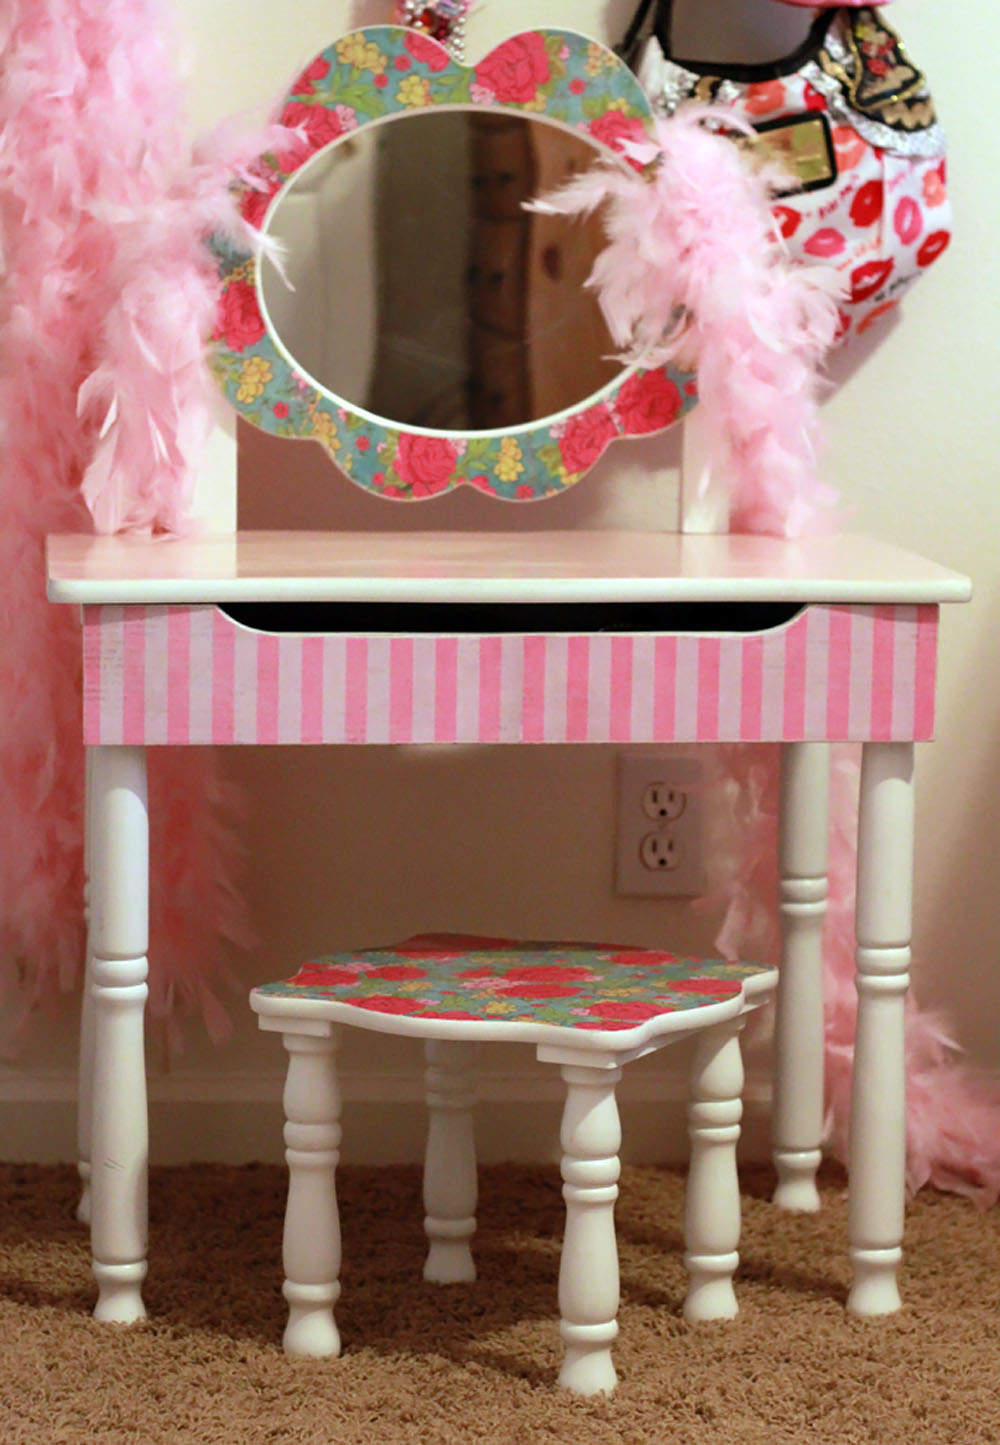 The Sassy Pepper Mod Podge Furniture Tutorial Gasp